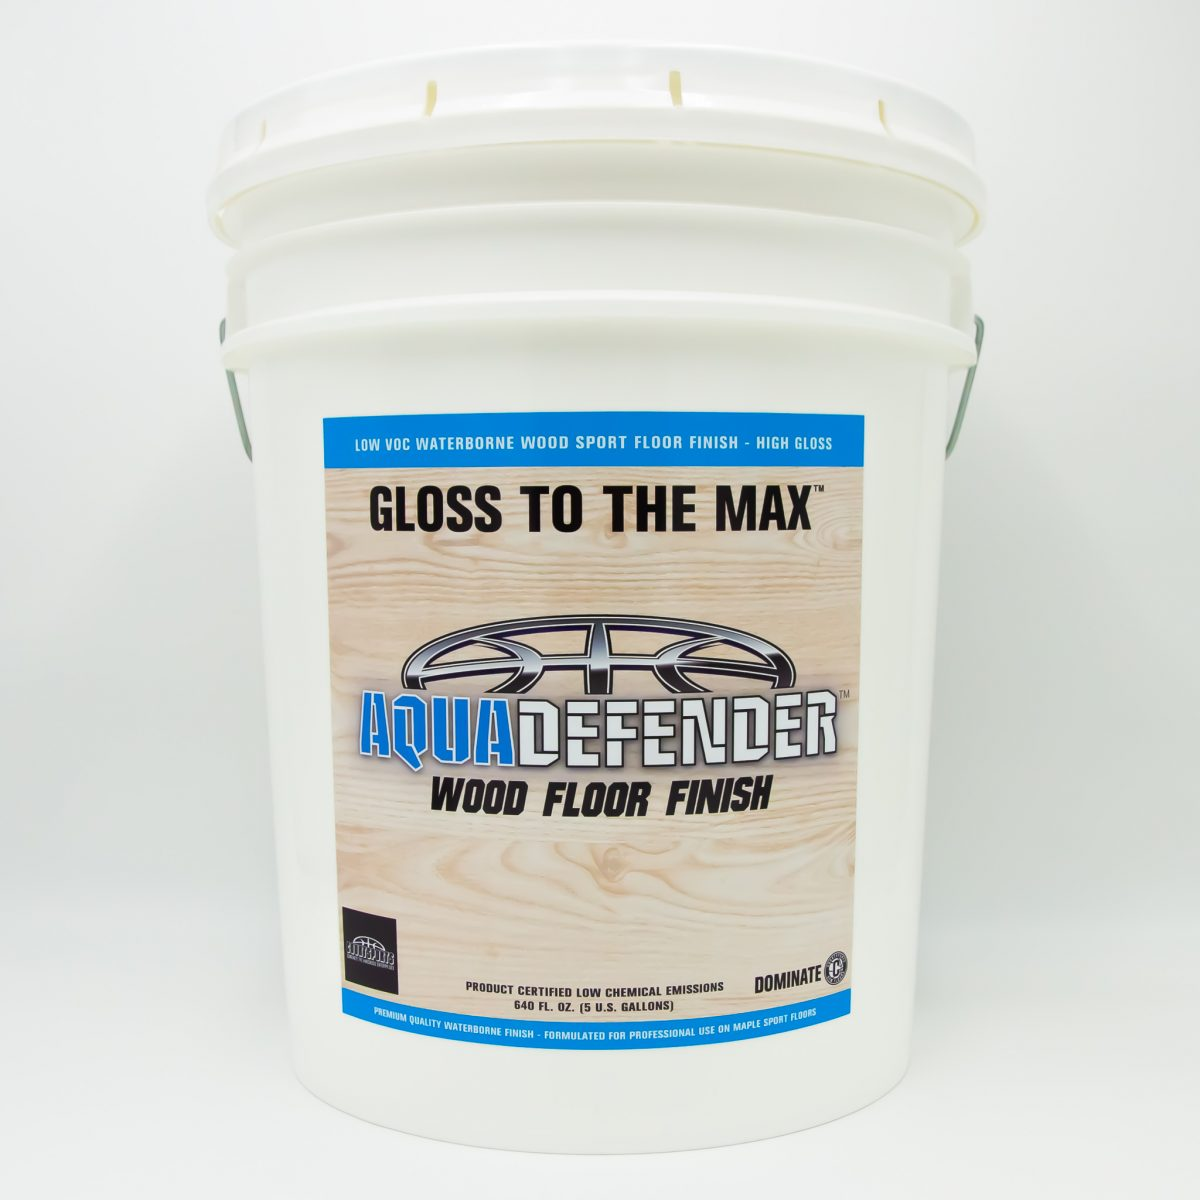 AQUADEFENDER WOOD FLOOR FINISH FOR SPORT FLOORS- WATERBORNE LOW VOC FORMULA AND FAST DRYING